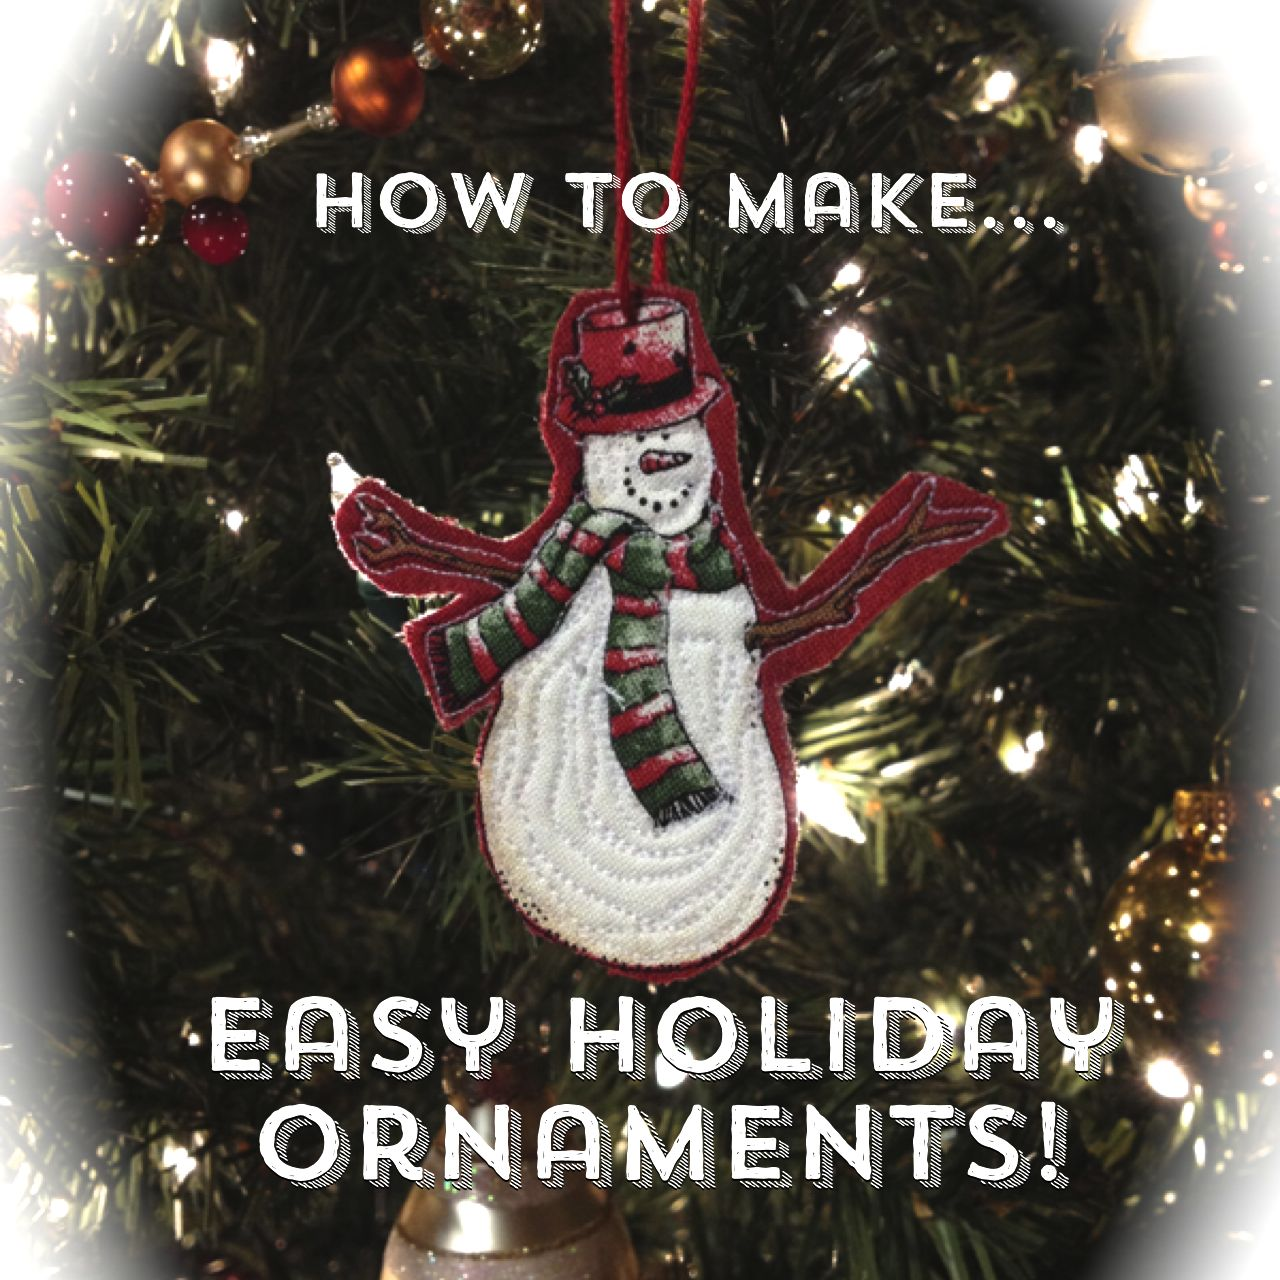 How To Make Christmas Decorations Easy: How To Make Easy Holiday Ornaments